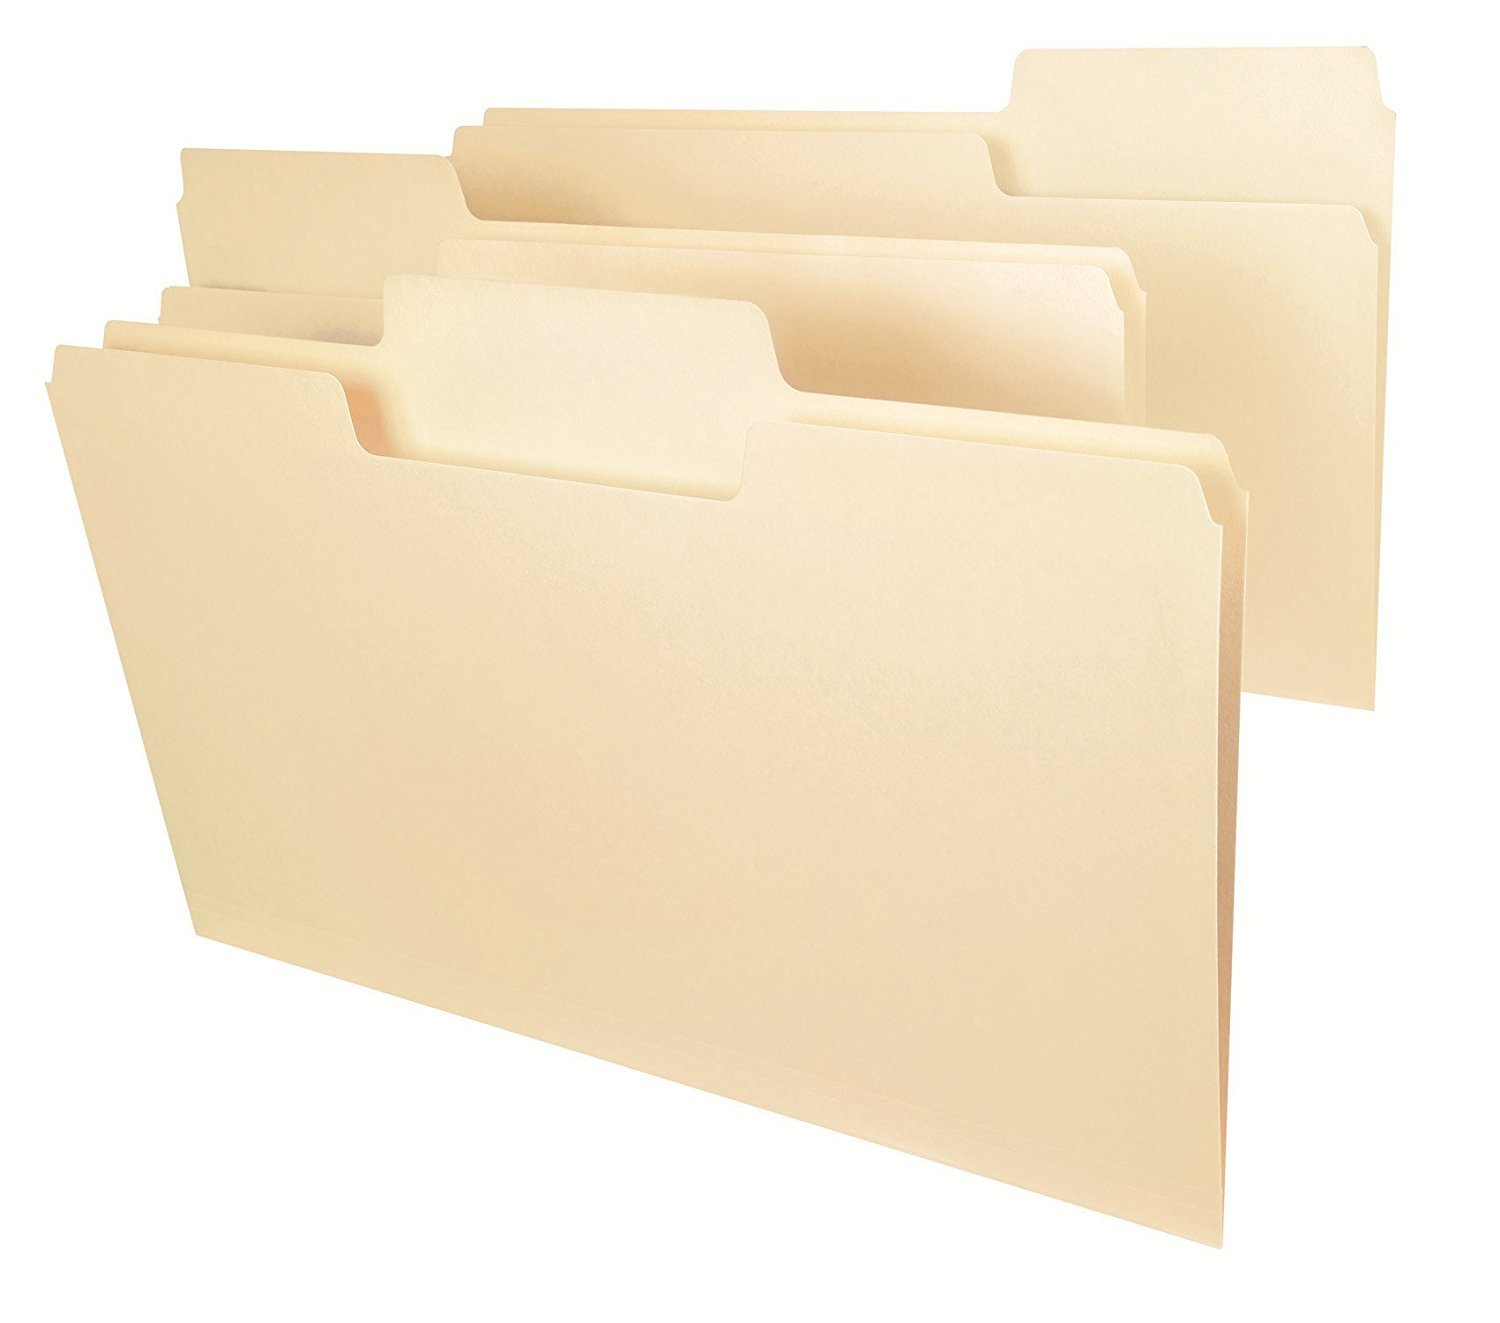 2 x Smead SuperTab File Folder, Oversized 1/3-Cut Tab, Legal Size, Manila, 100 Per Box by Smead